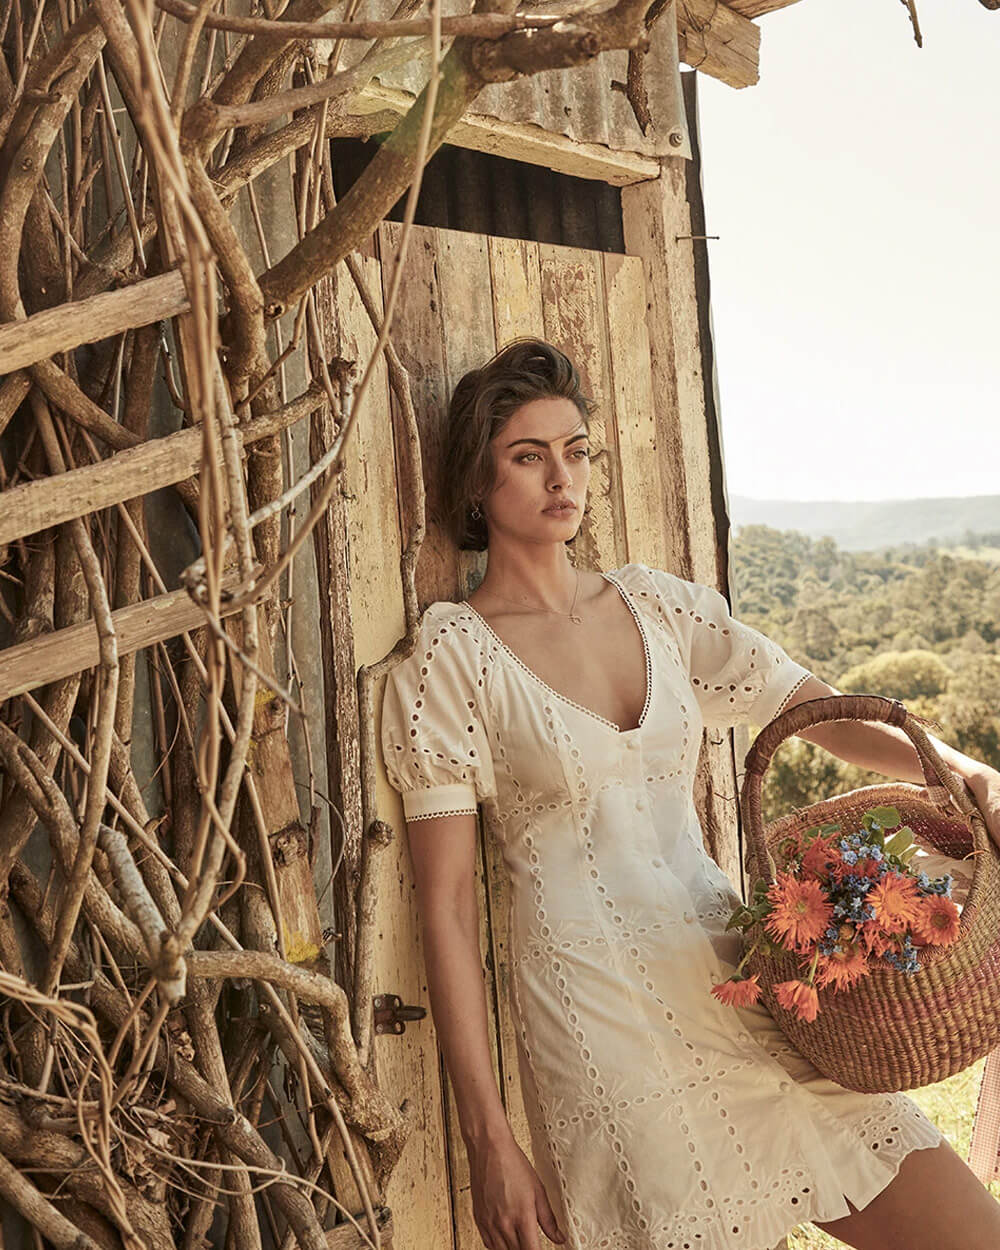 We Are Kindred boho style stores like Anthropologie